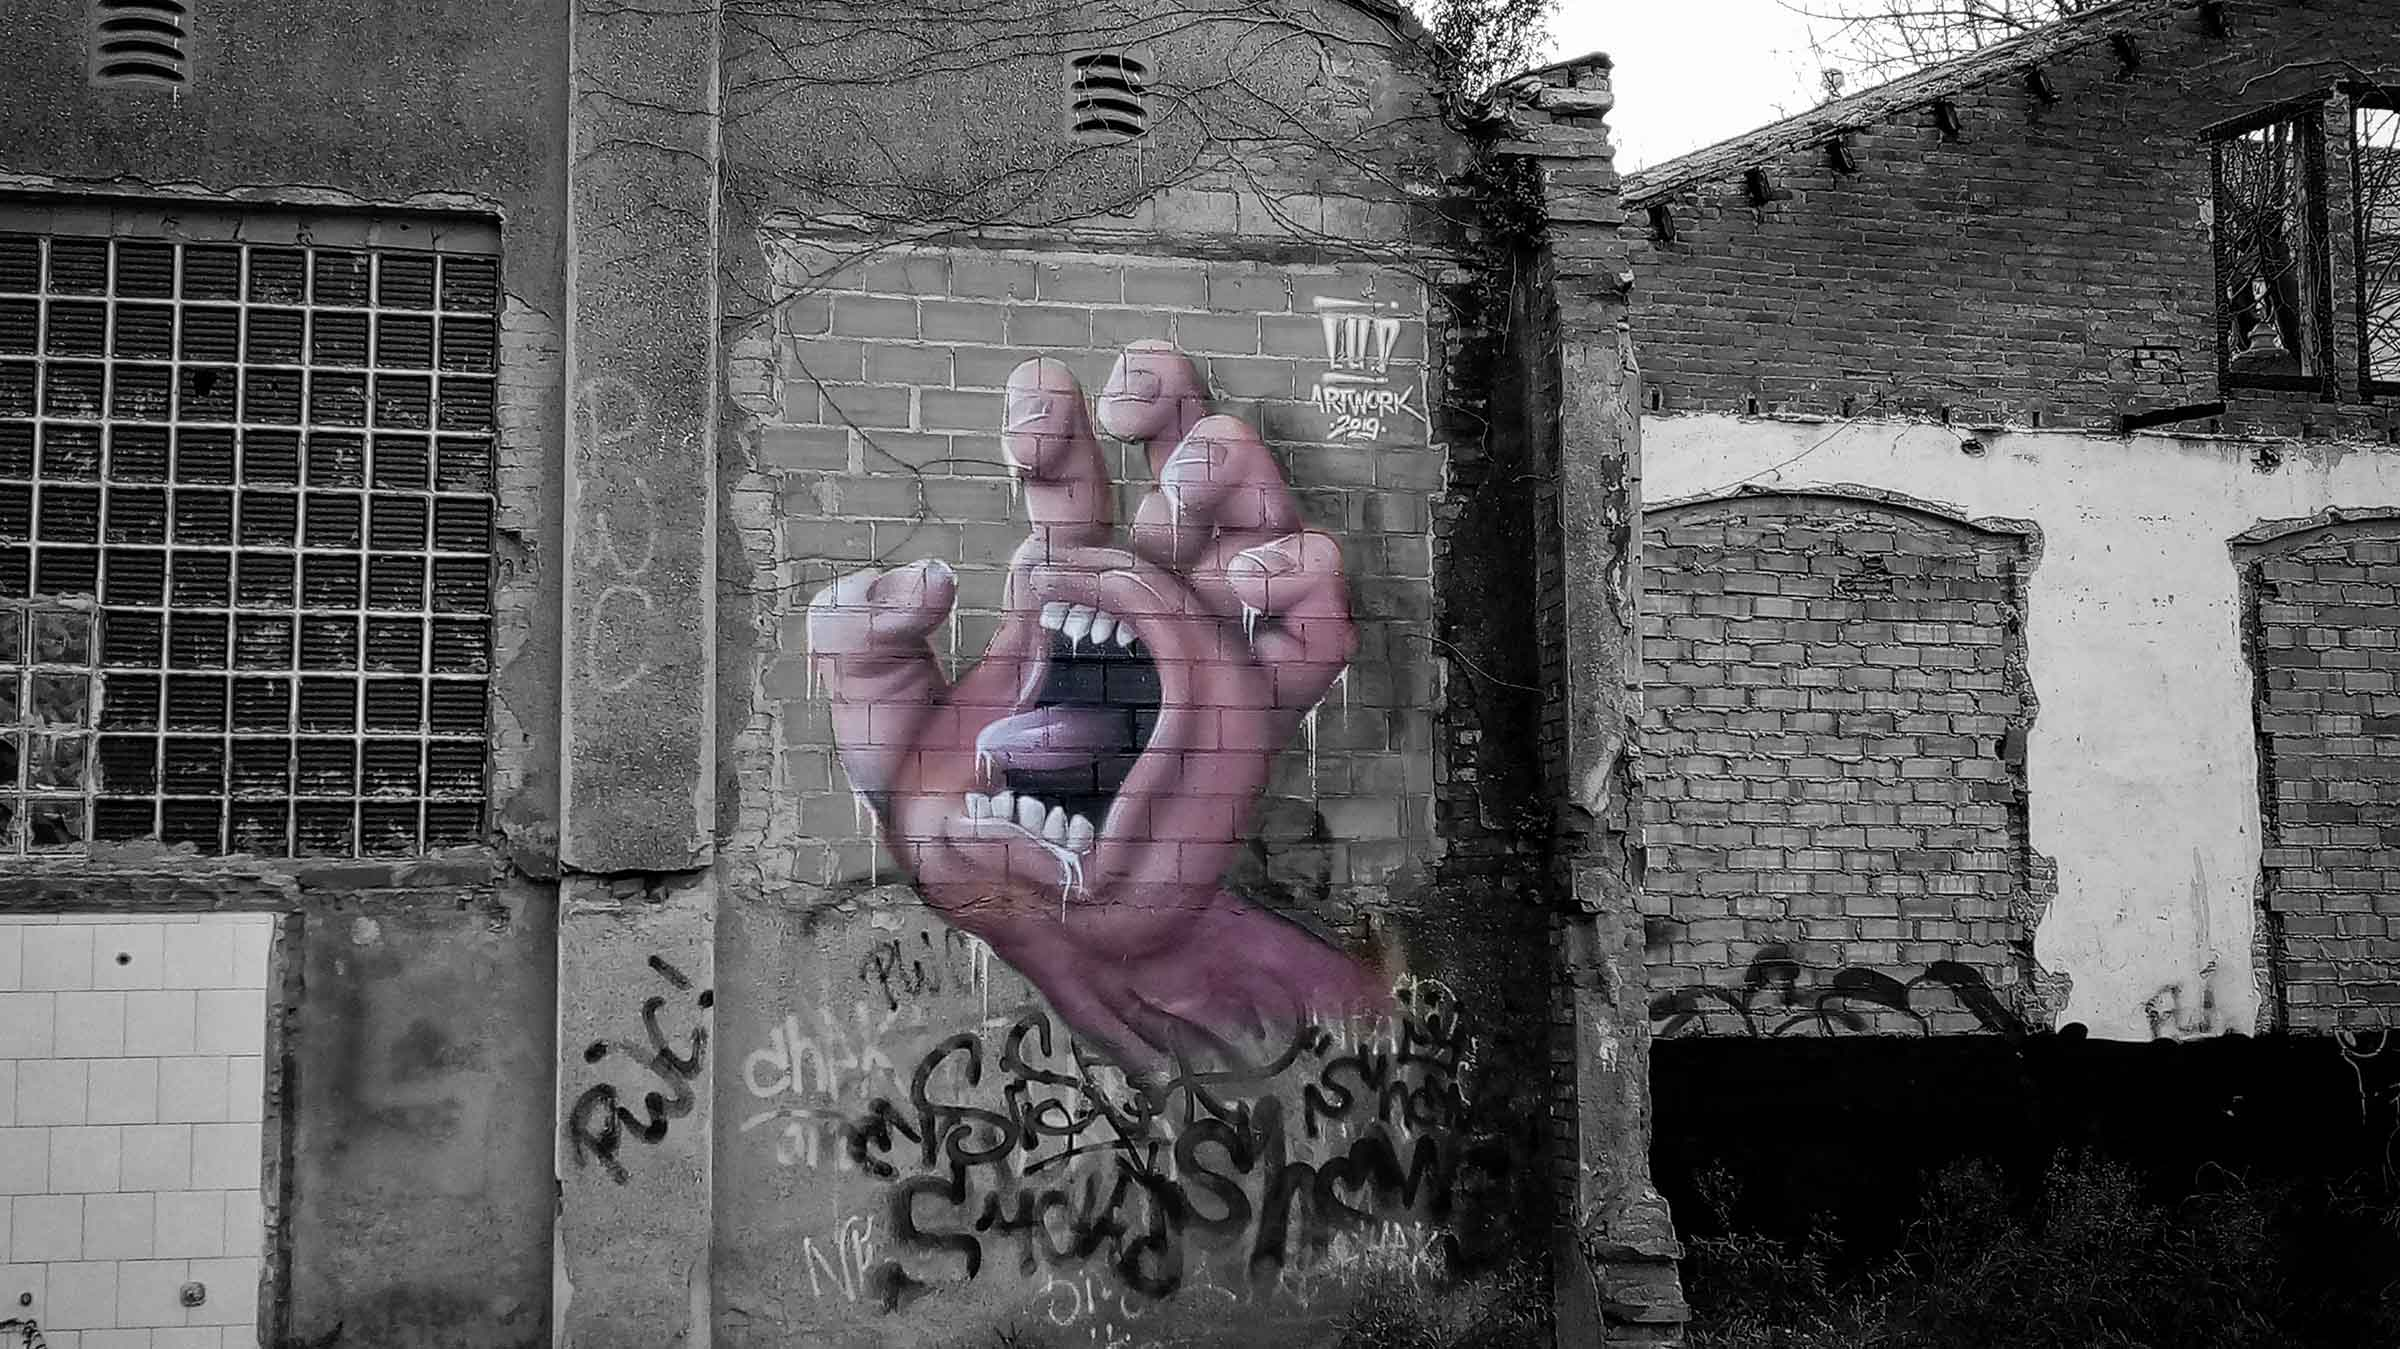 hand graffiti street art